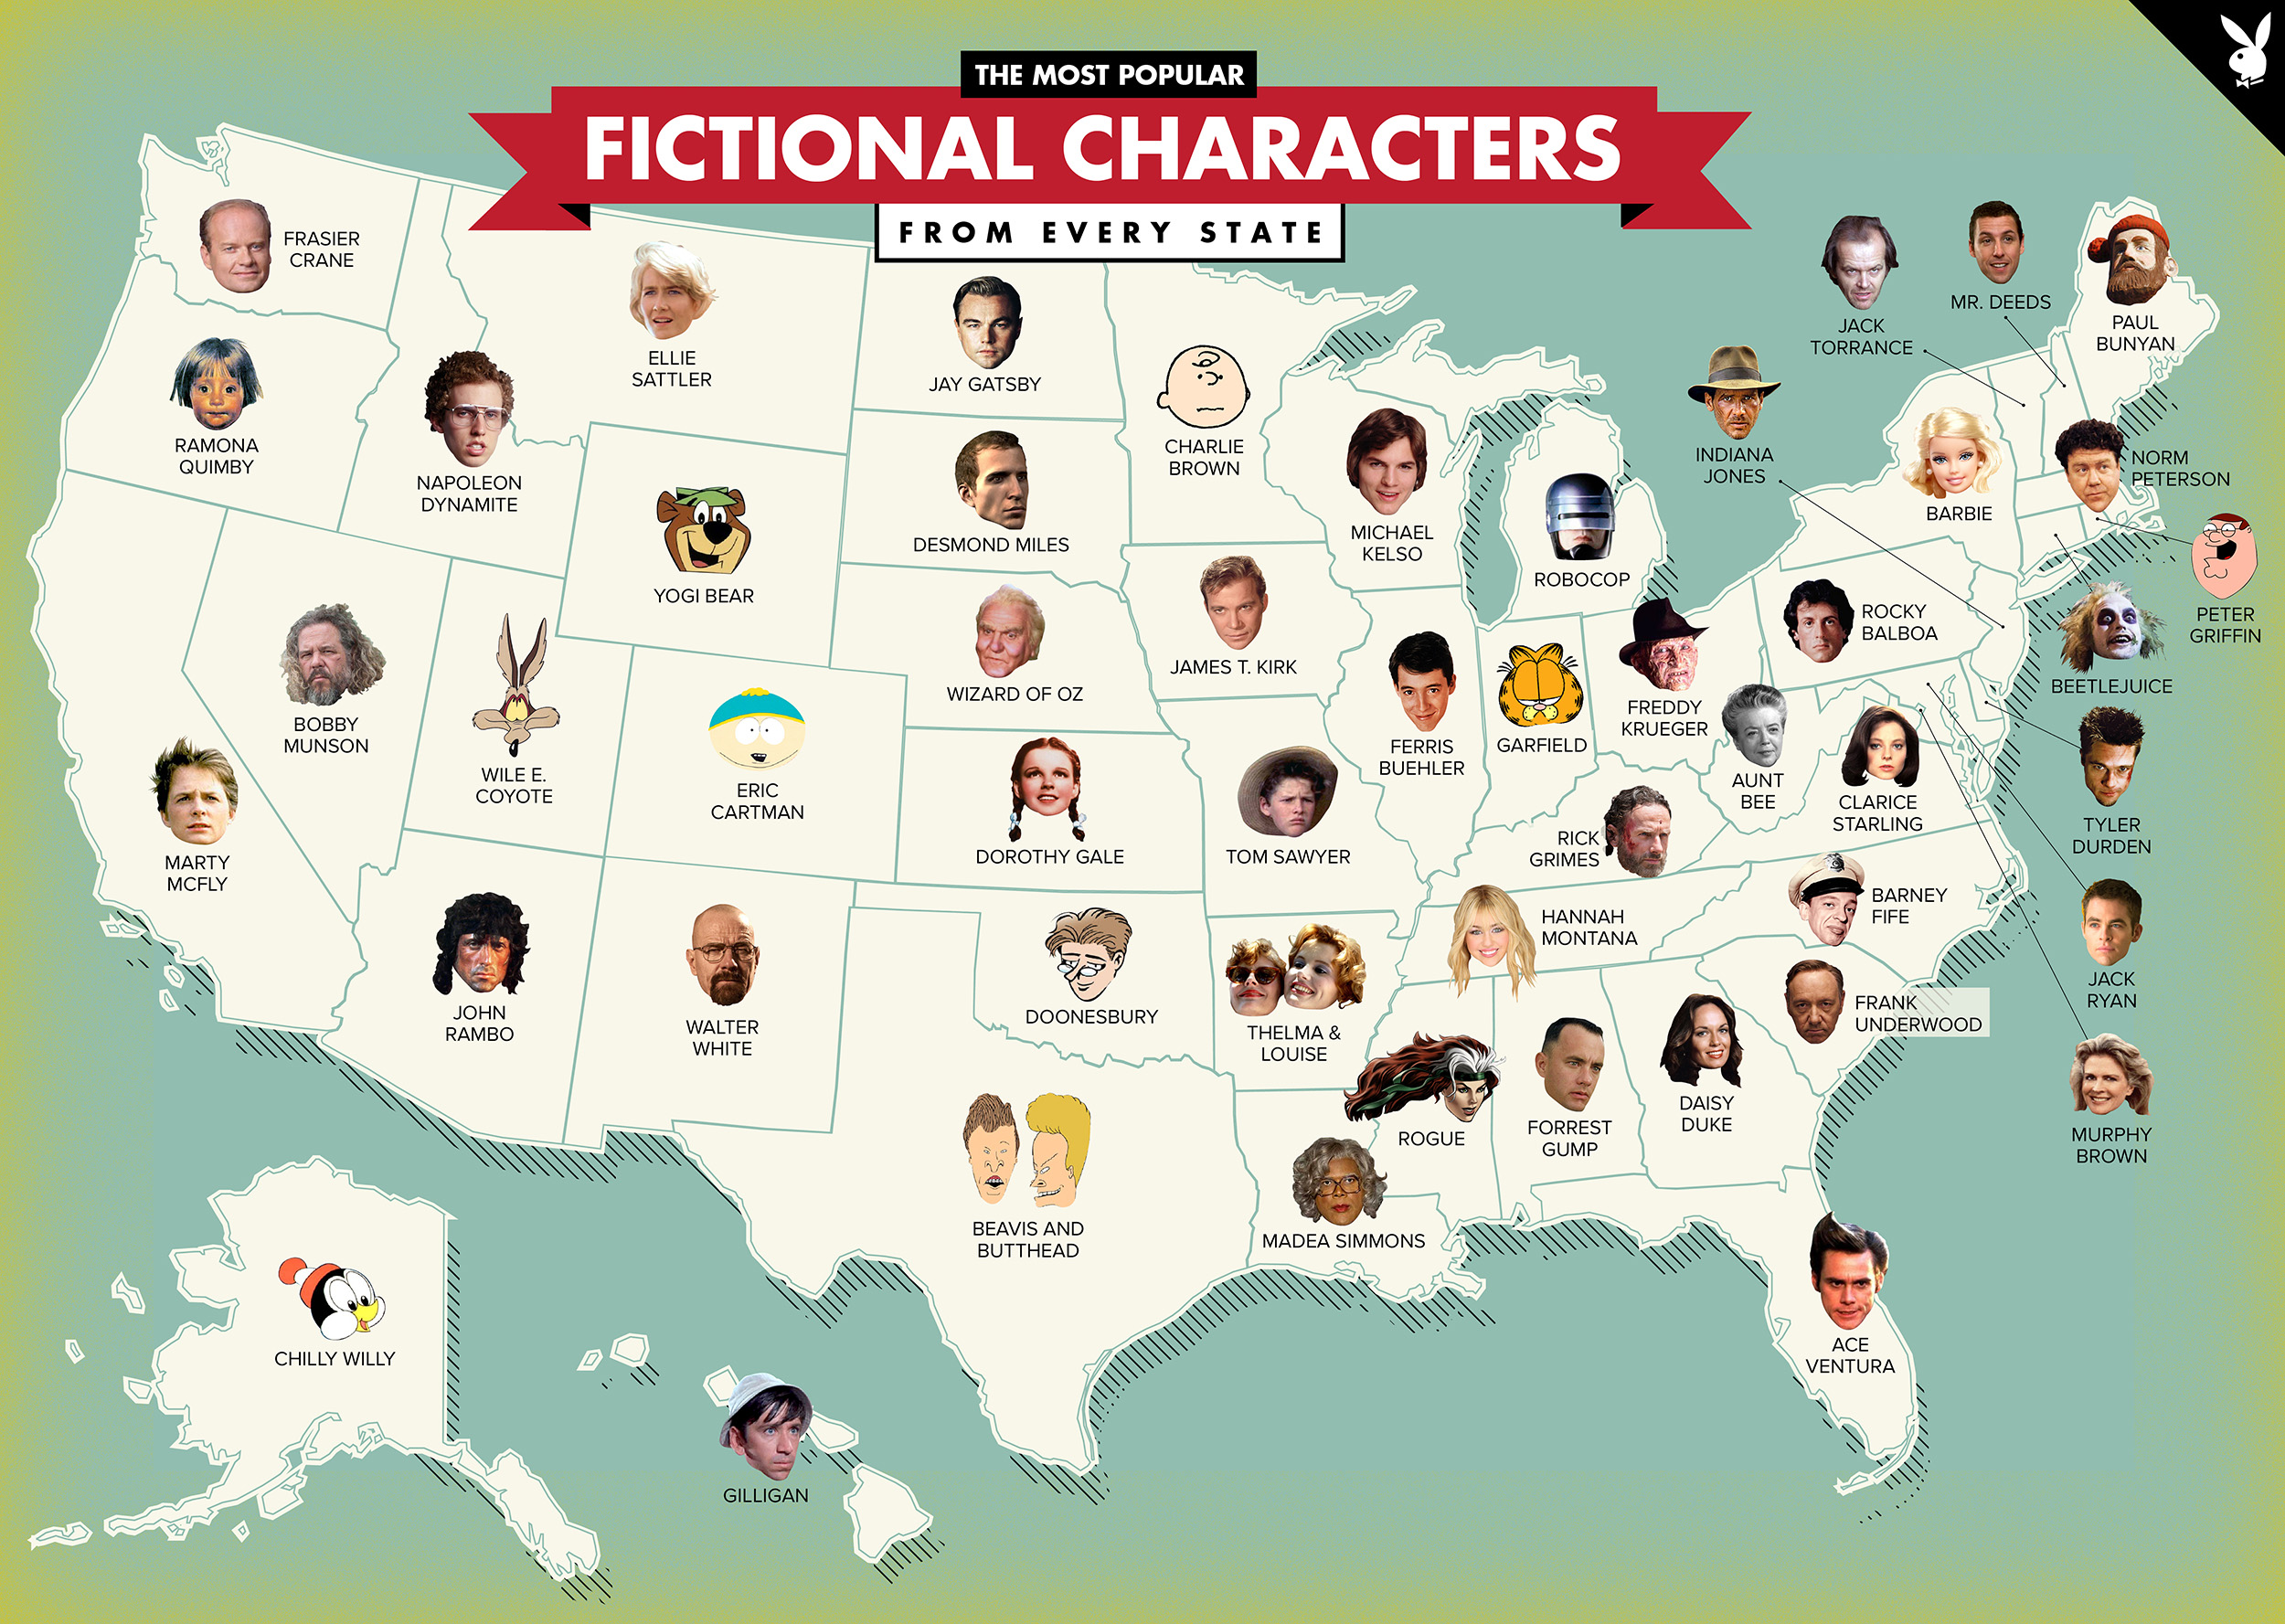 pokemon google maps locations with The Most Famous Fictional Characters From Each State on EmailArticle together with tocaboca in addition The Most Famous Fictional Characters From Each State moreover Texas Longhorns Hd Wallpapers android informer moreover This World Map Shows Where Every Disney Movie Is Set.